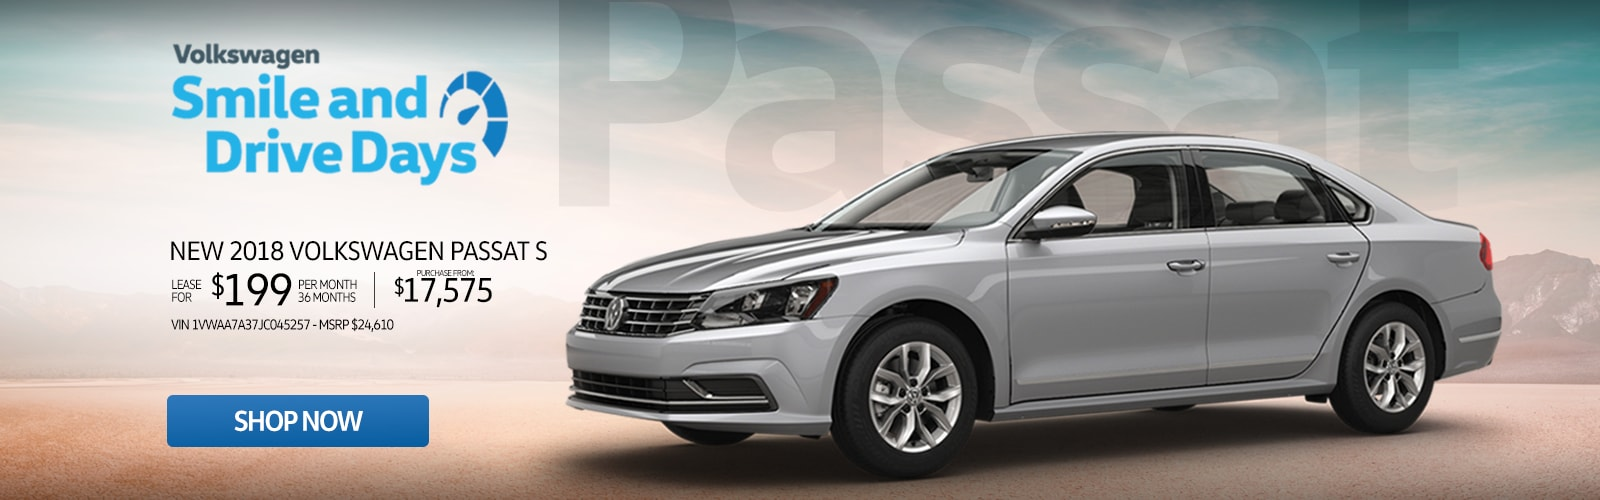 New 2018 Volkswagen Passat S Lease For Just $199 Or Purchase From $17,575 at Larry H. Miller Volkswagen Avondale